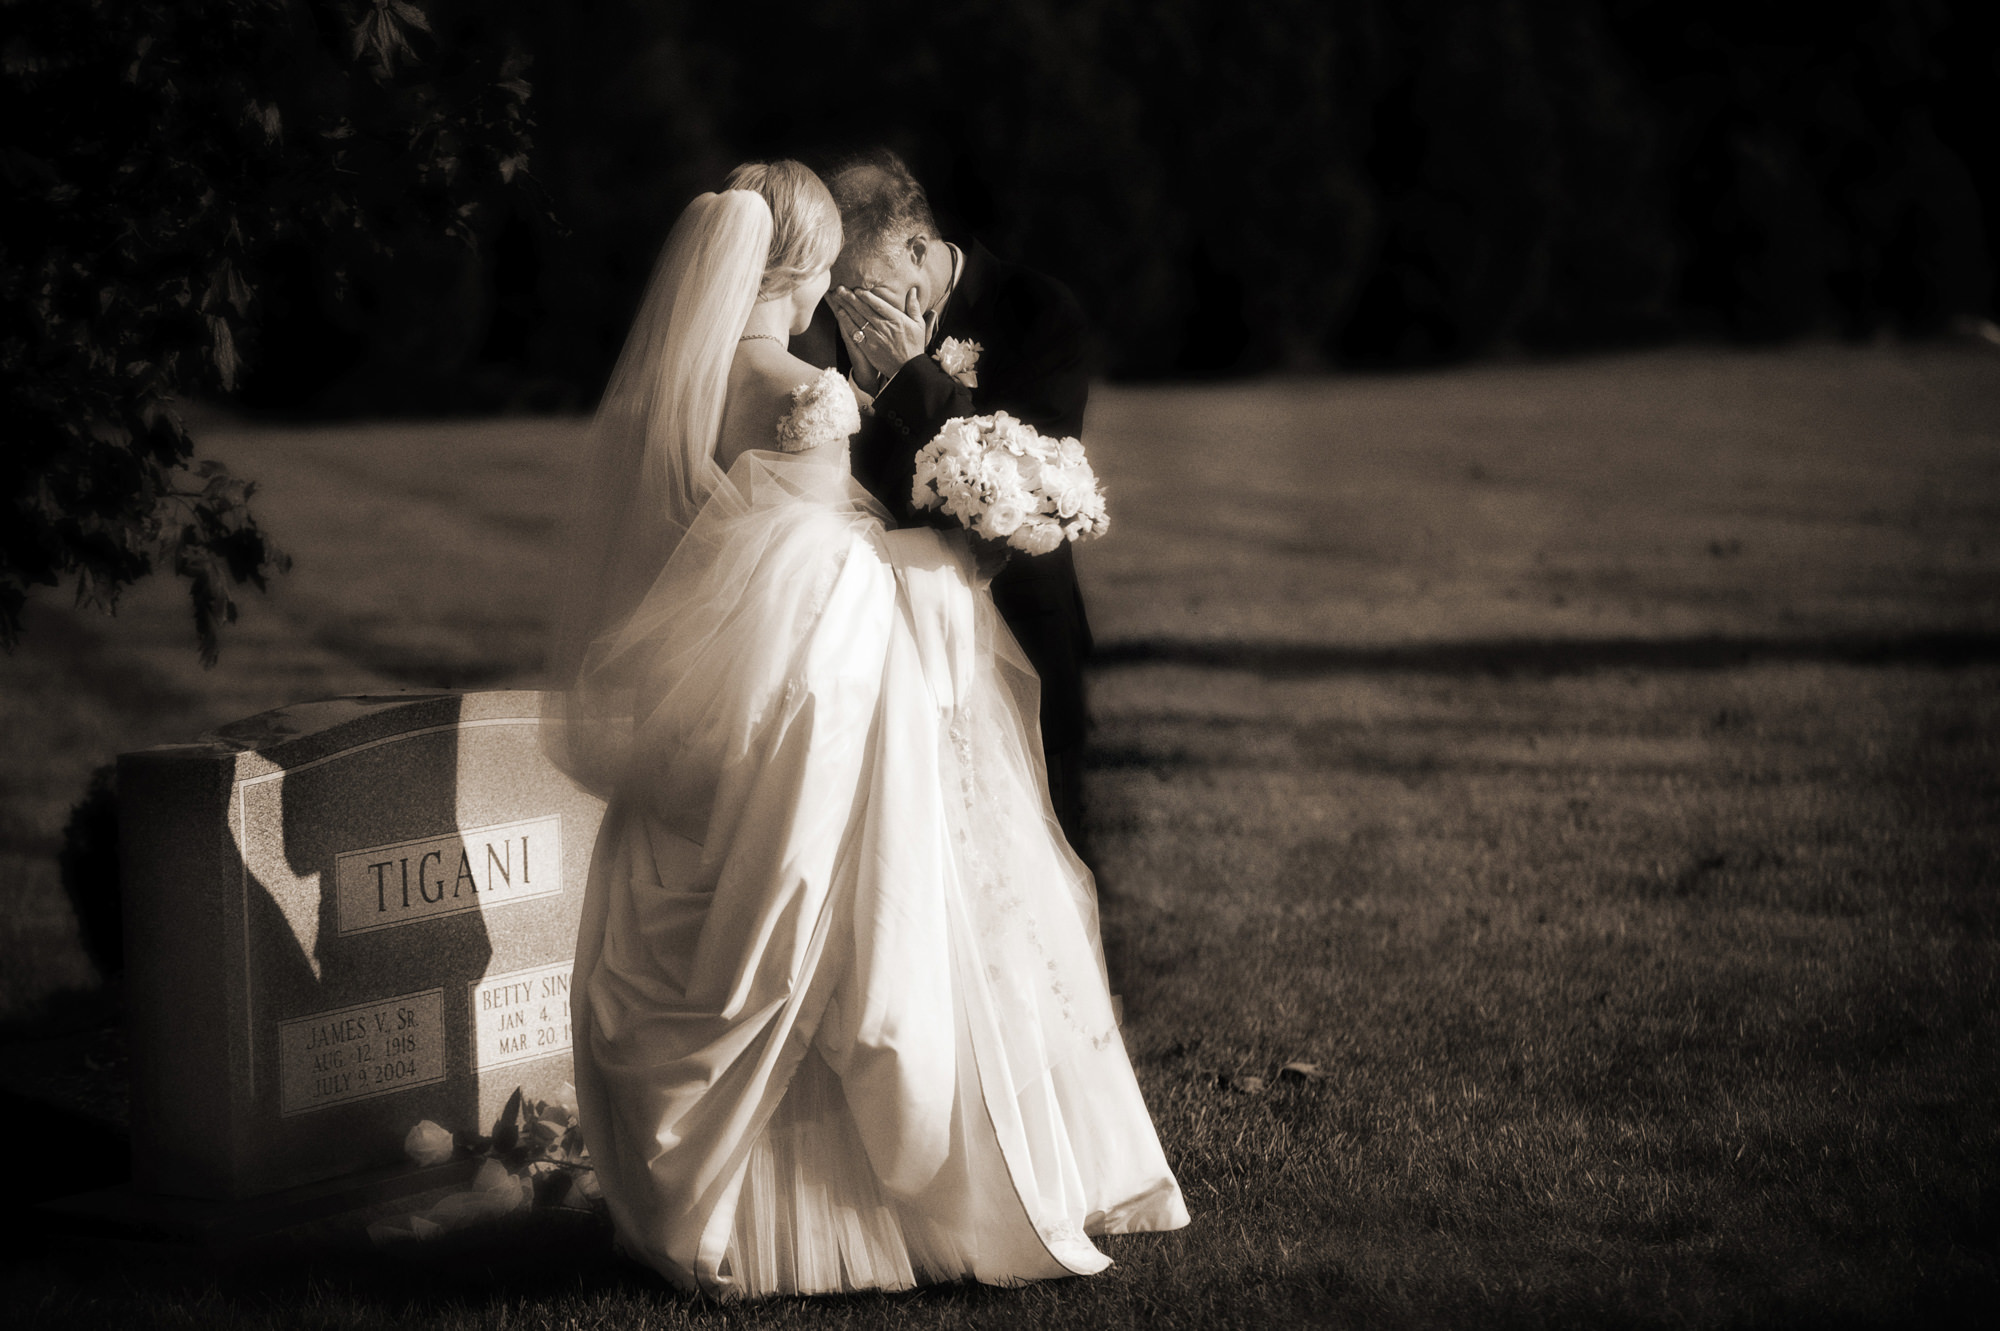 Sepia bride and groom crying at cemetery photo by Cliff Mautner